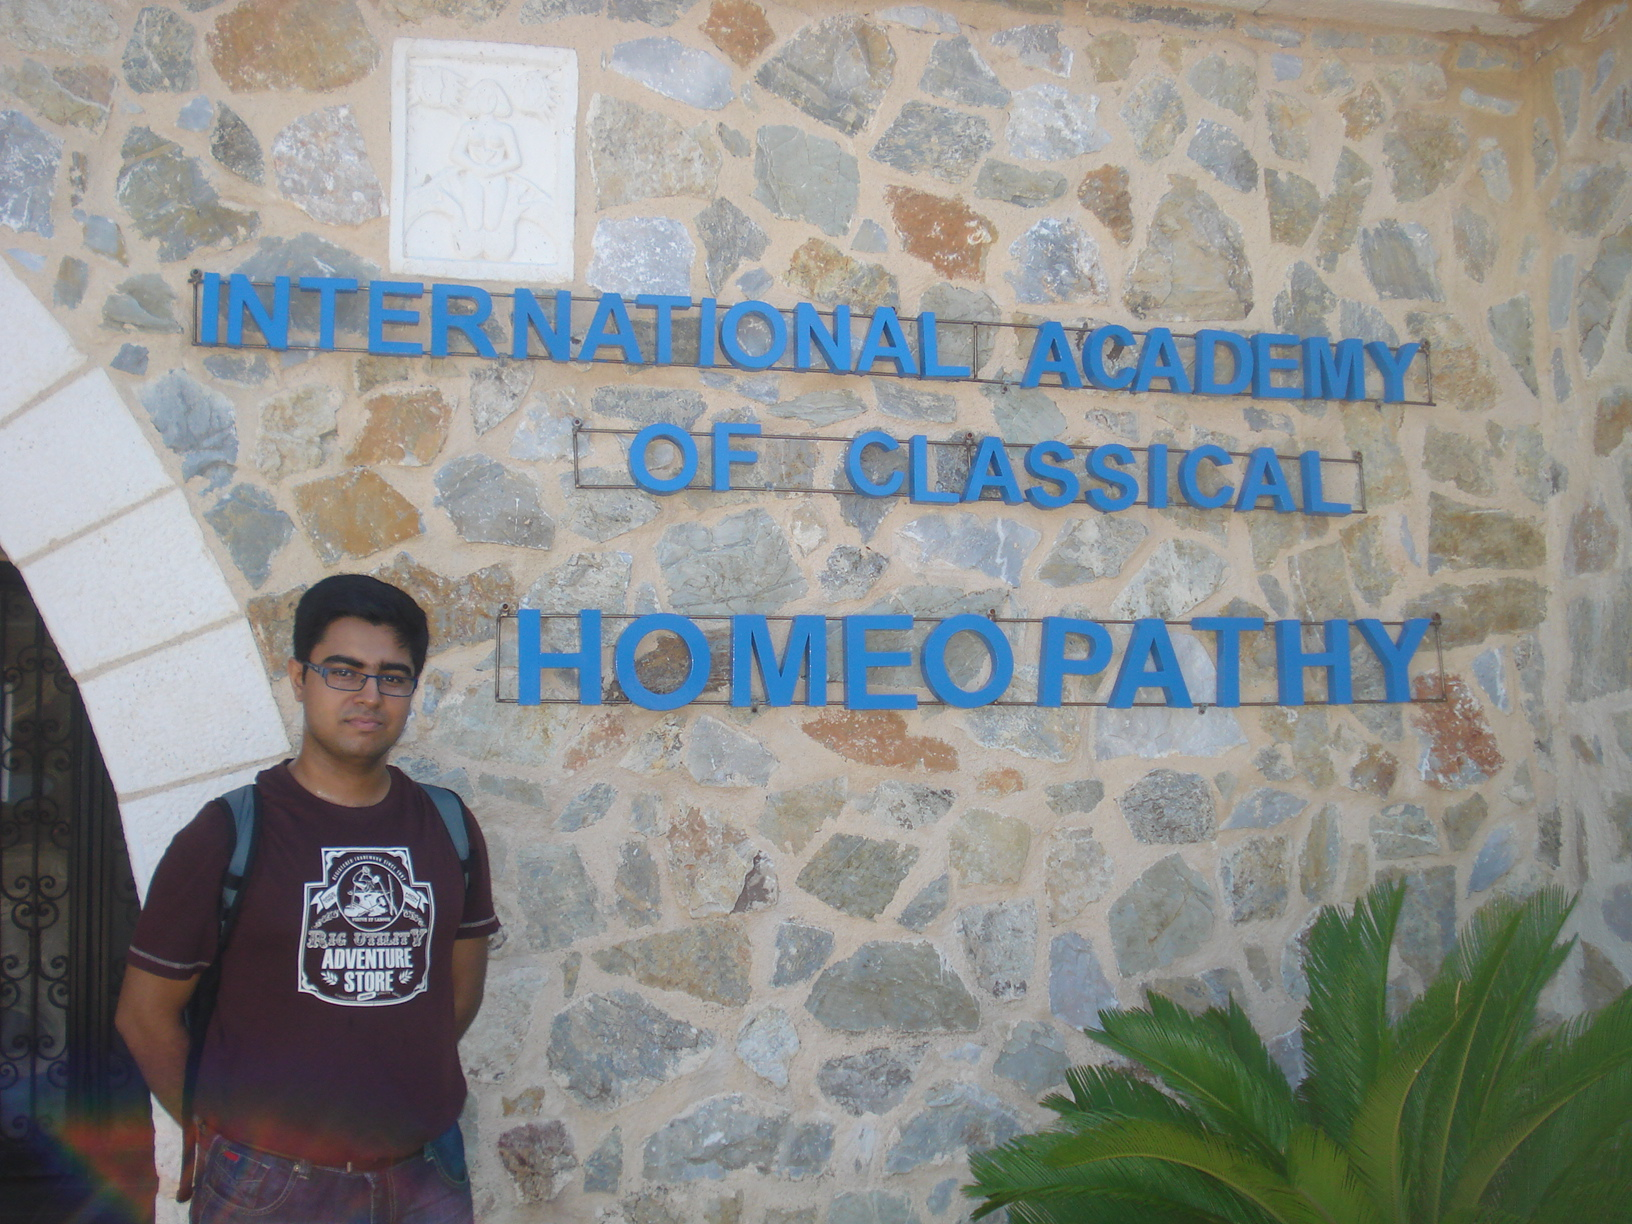 Dr.Saptarshi at the International Academy of Classical Homeopathy in the summer of 2013.